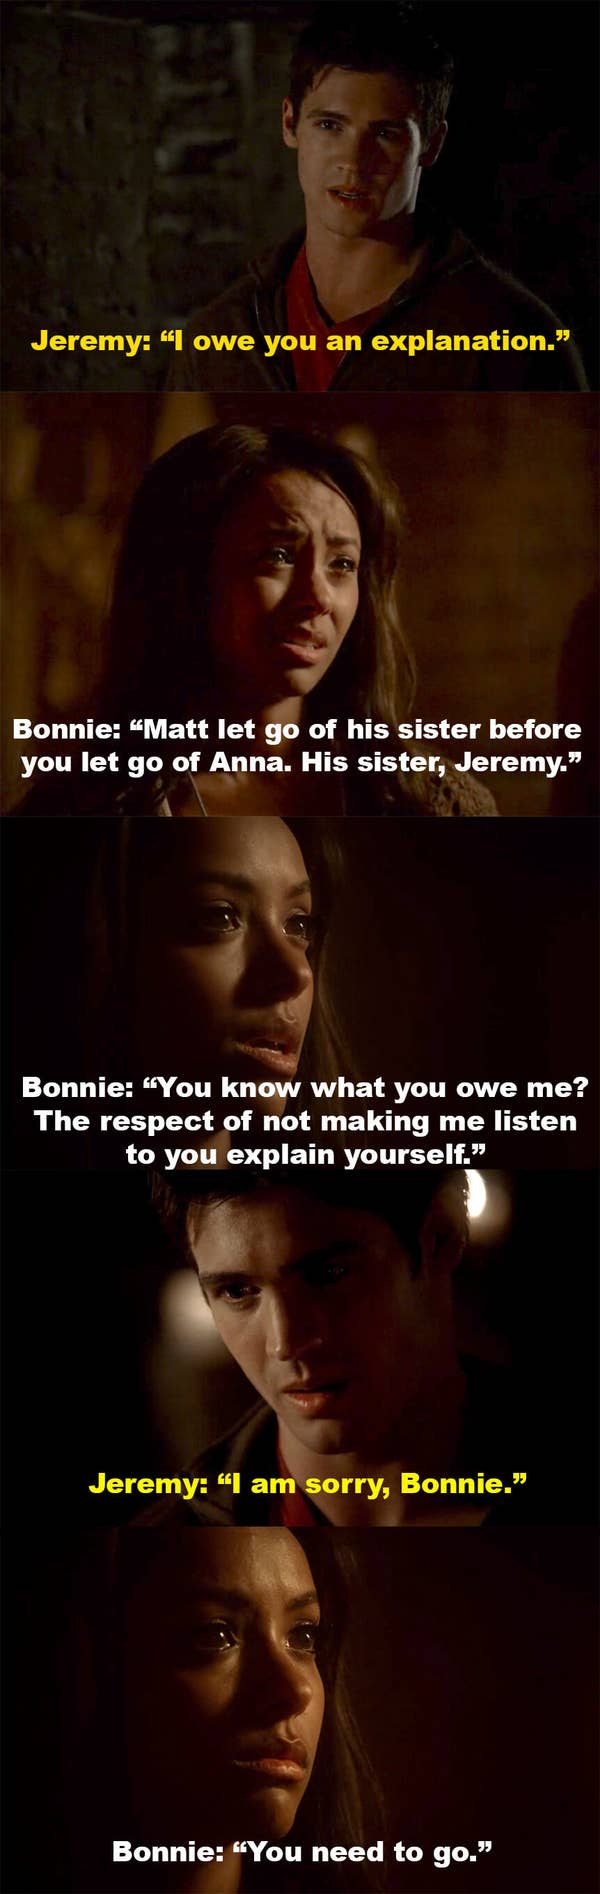 Jeremy says he owes Bonnie an explanation, but Bonnie won't let him explain. She says Matt let go of his sister before Jeremy let go of Anna, then says Jeremy shouldn't make her listen to him explain himself. Jeremy apologizes, but Bonnie tells him to go